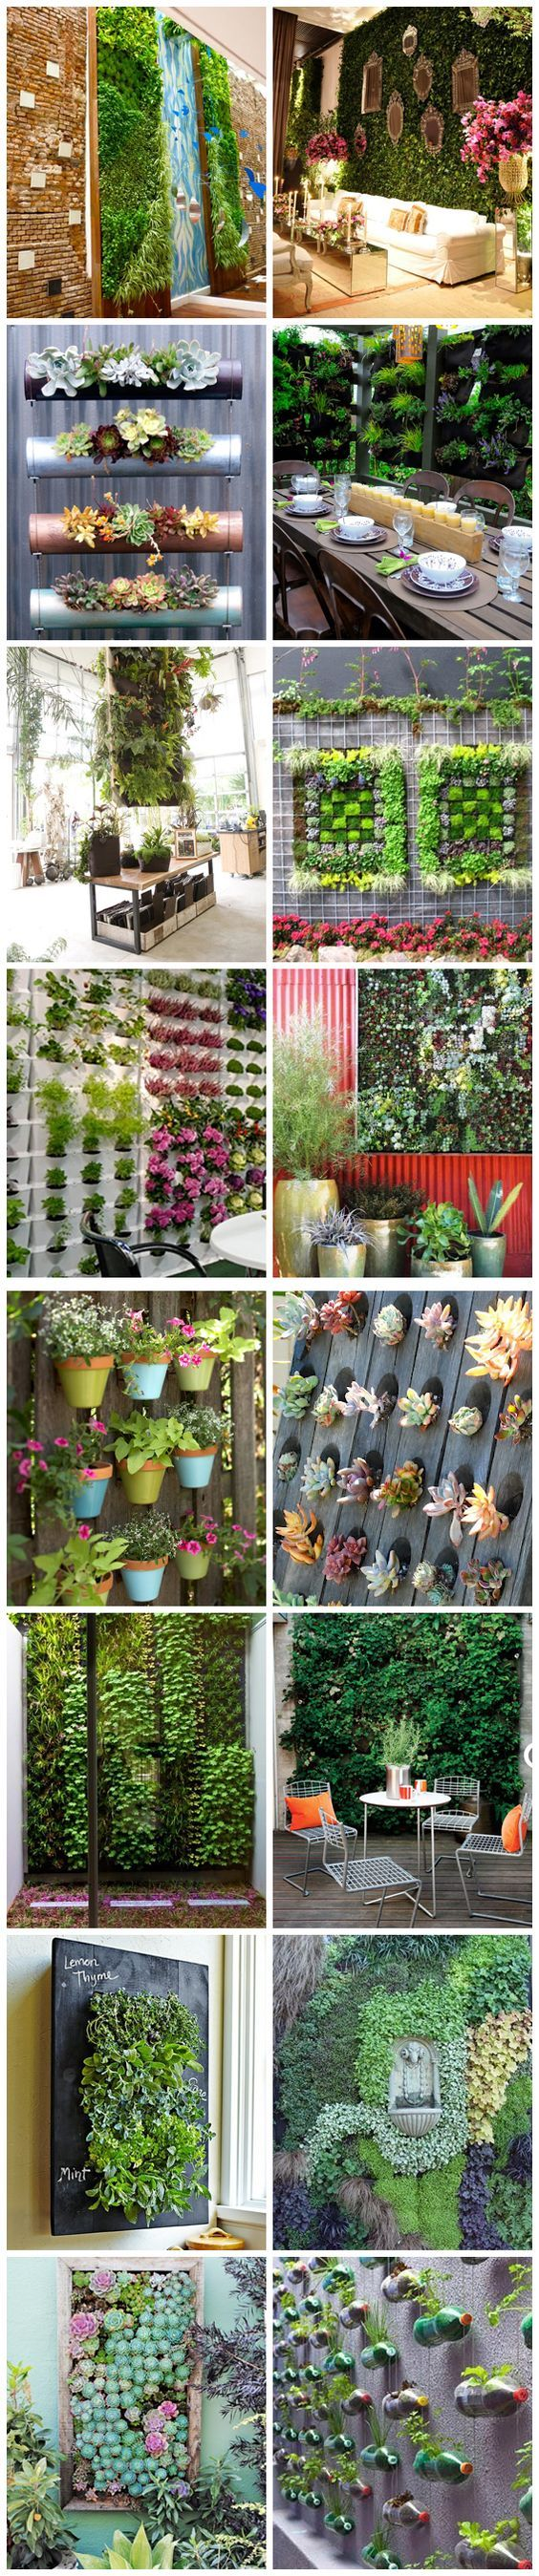 23 best images about Plant Walls/Vertical Gardening on Pinterest